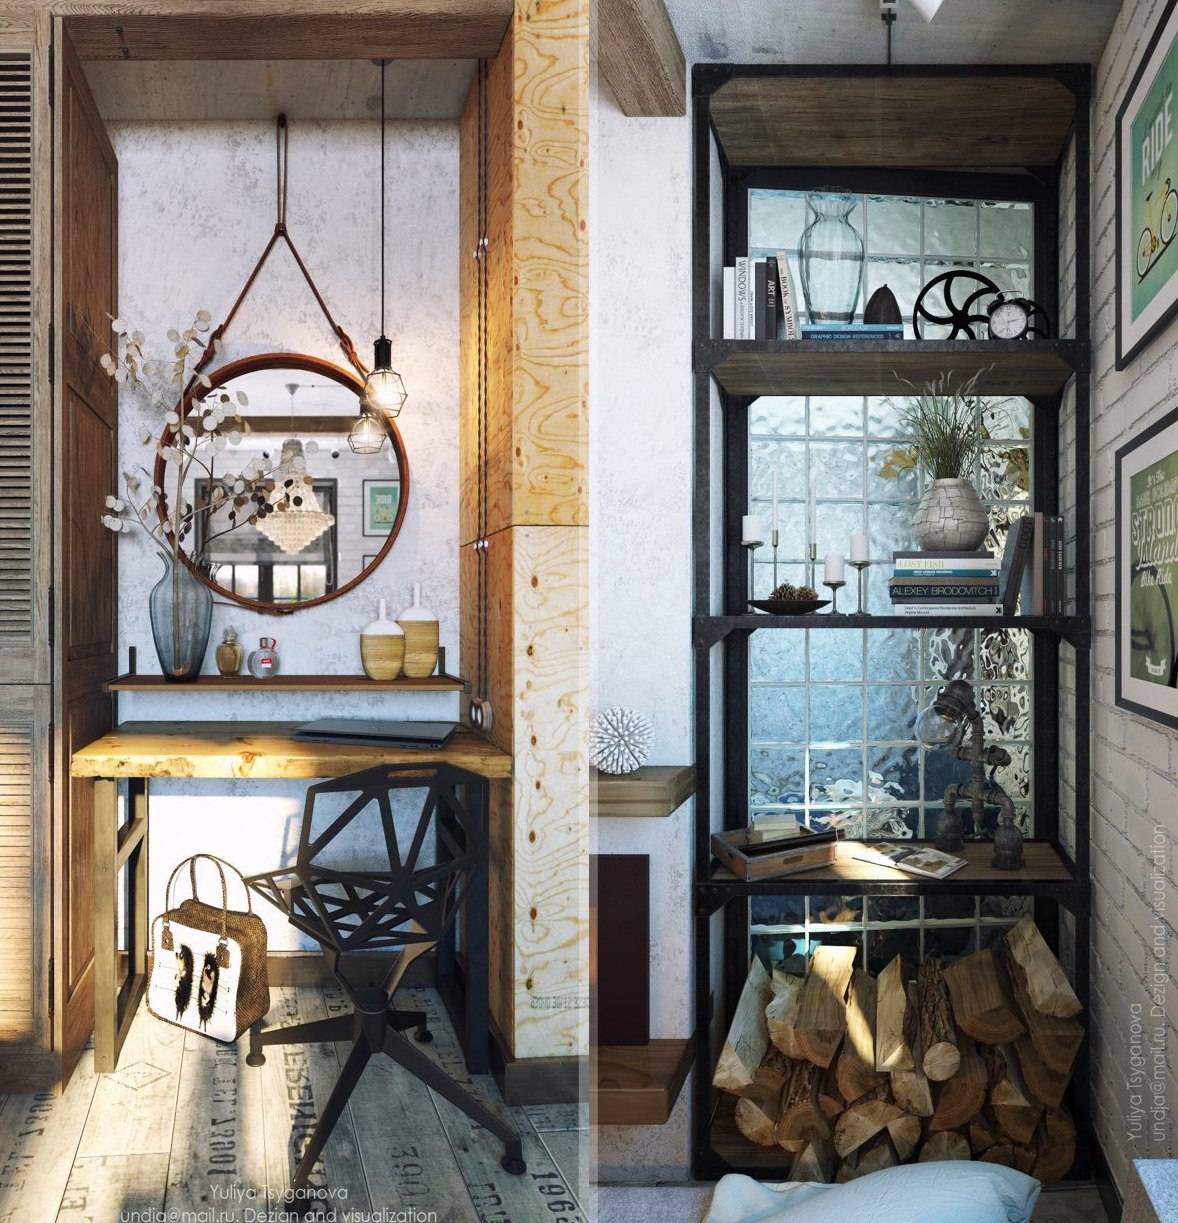 There's a home office nook with a cool metal chair and a large mirror